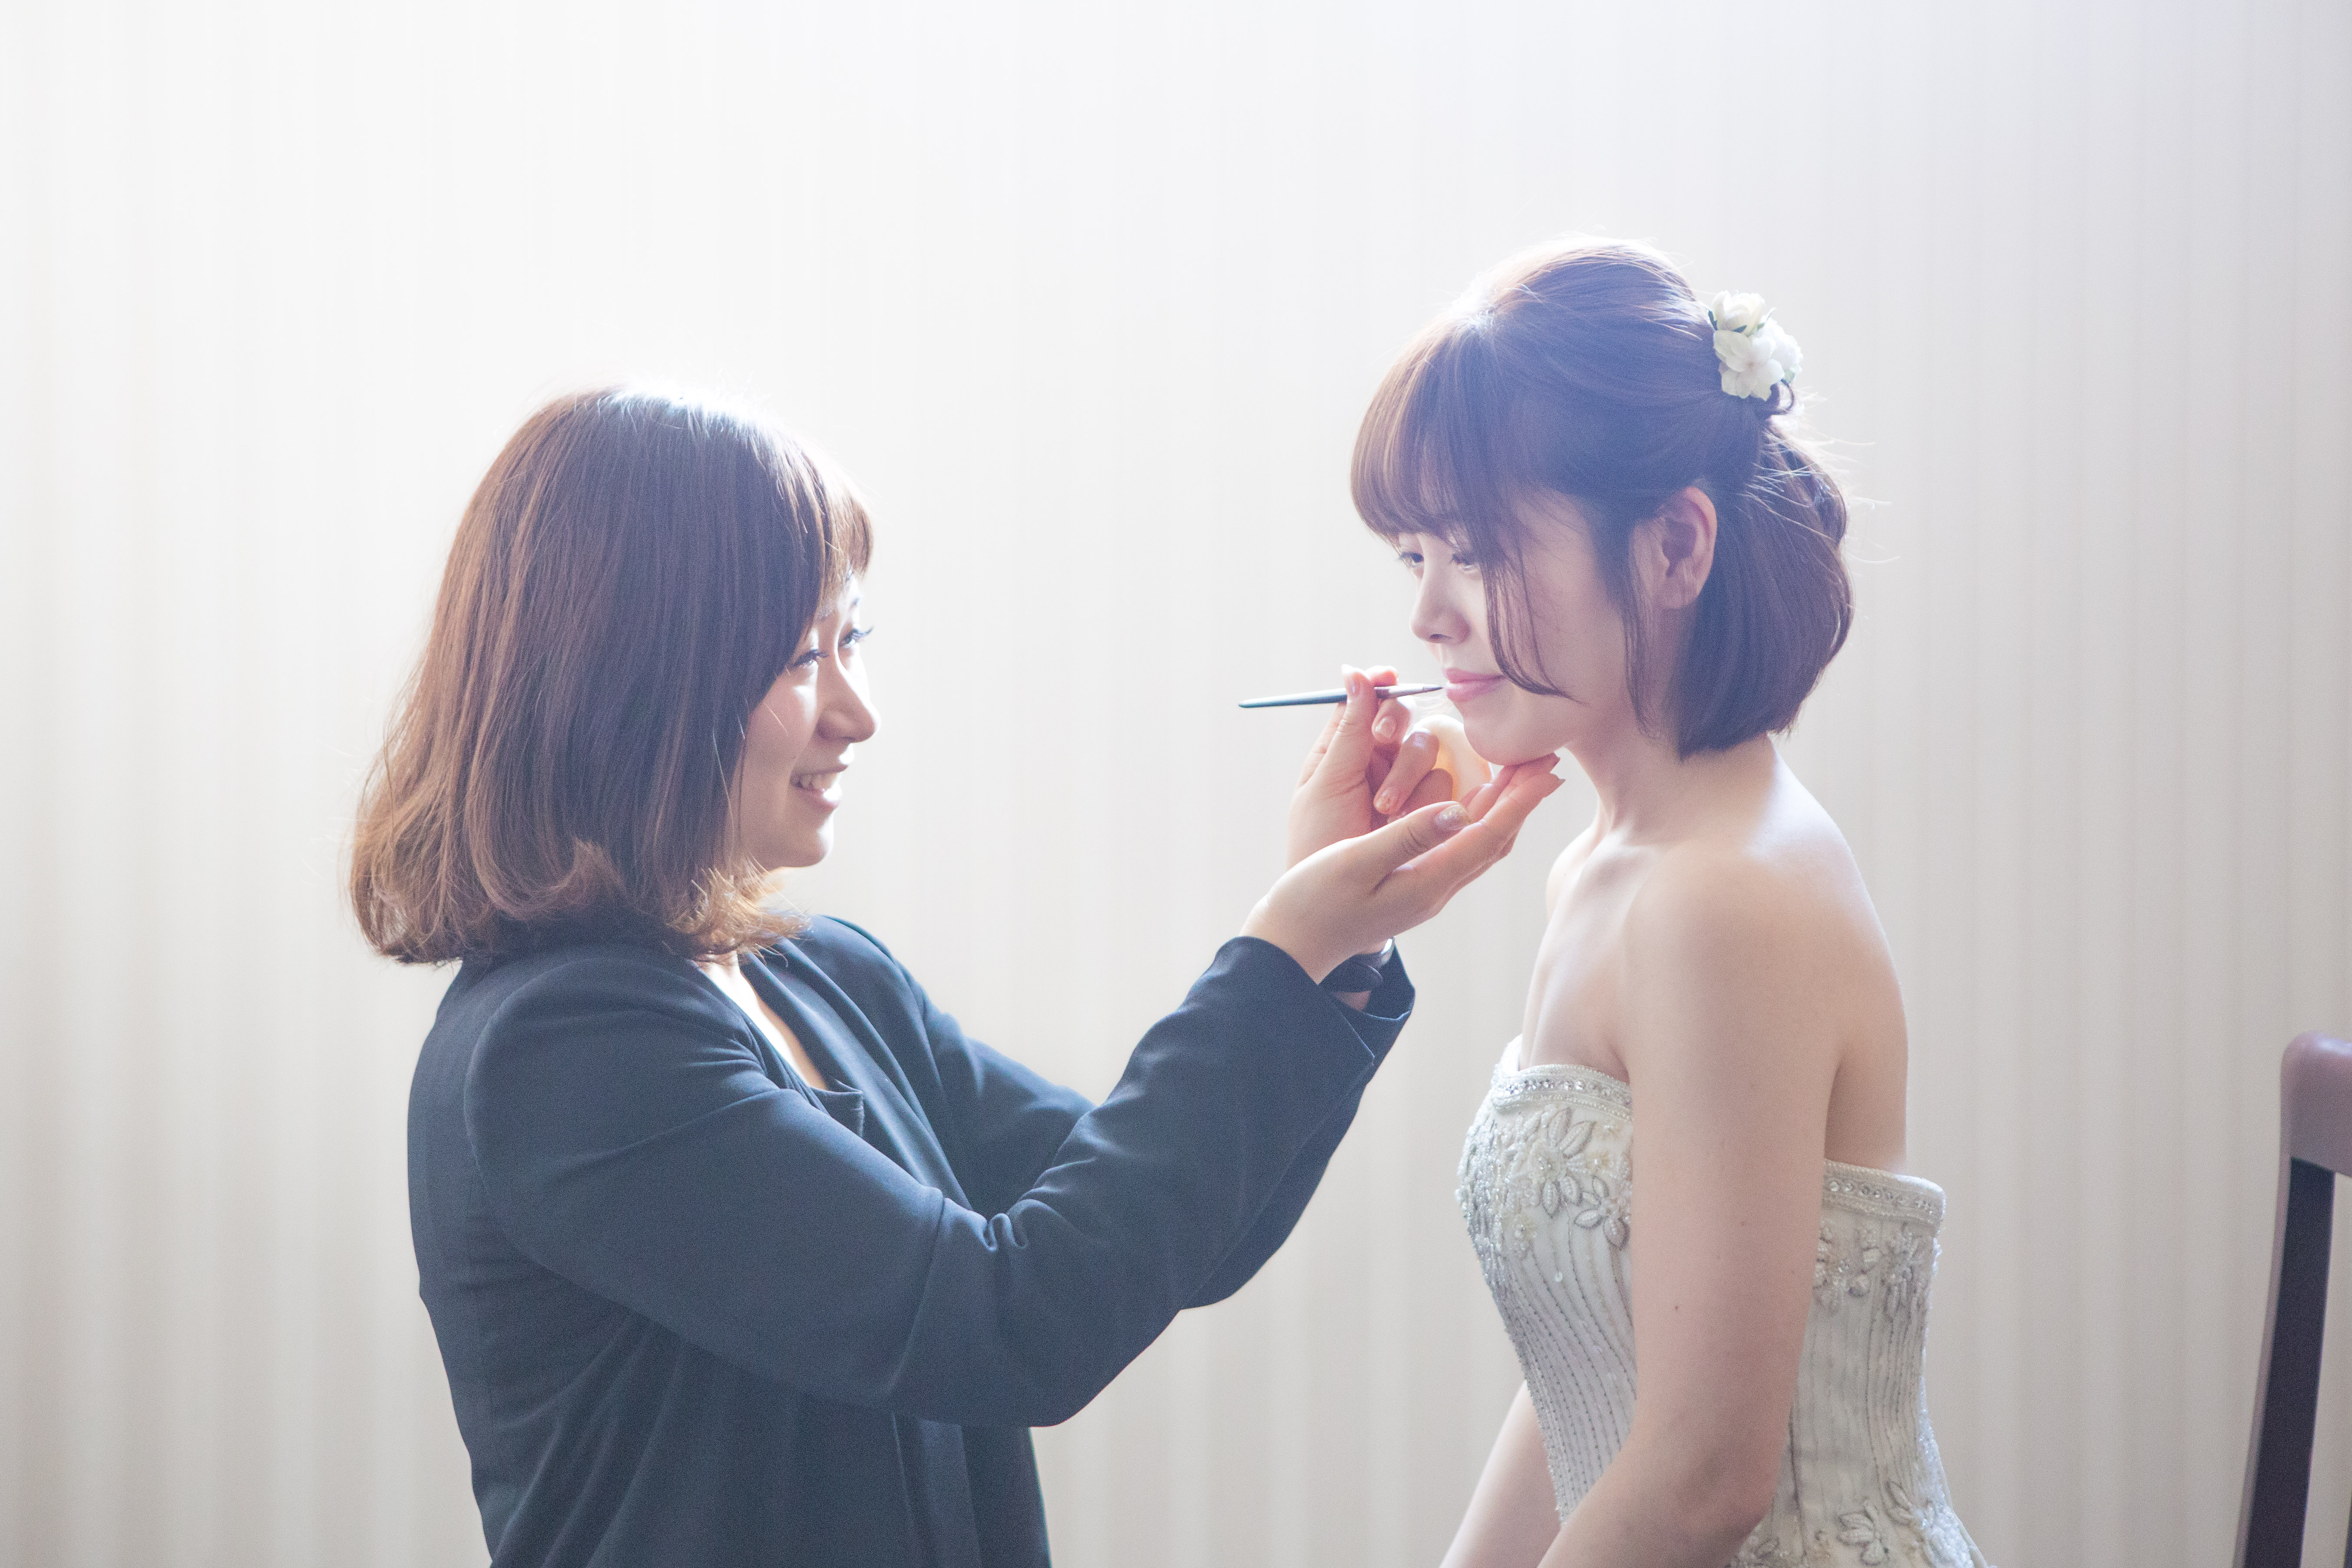 Hairstylists & Makeup Artists (1)